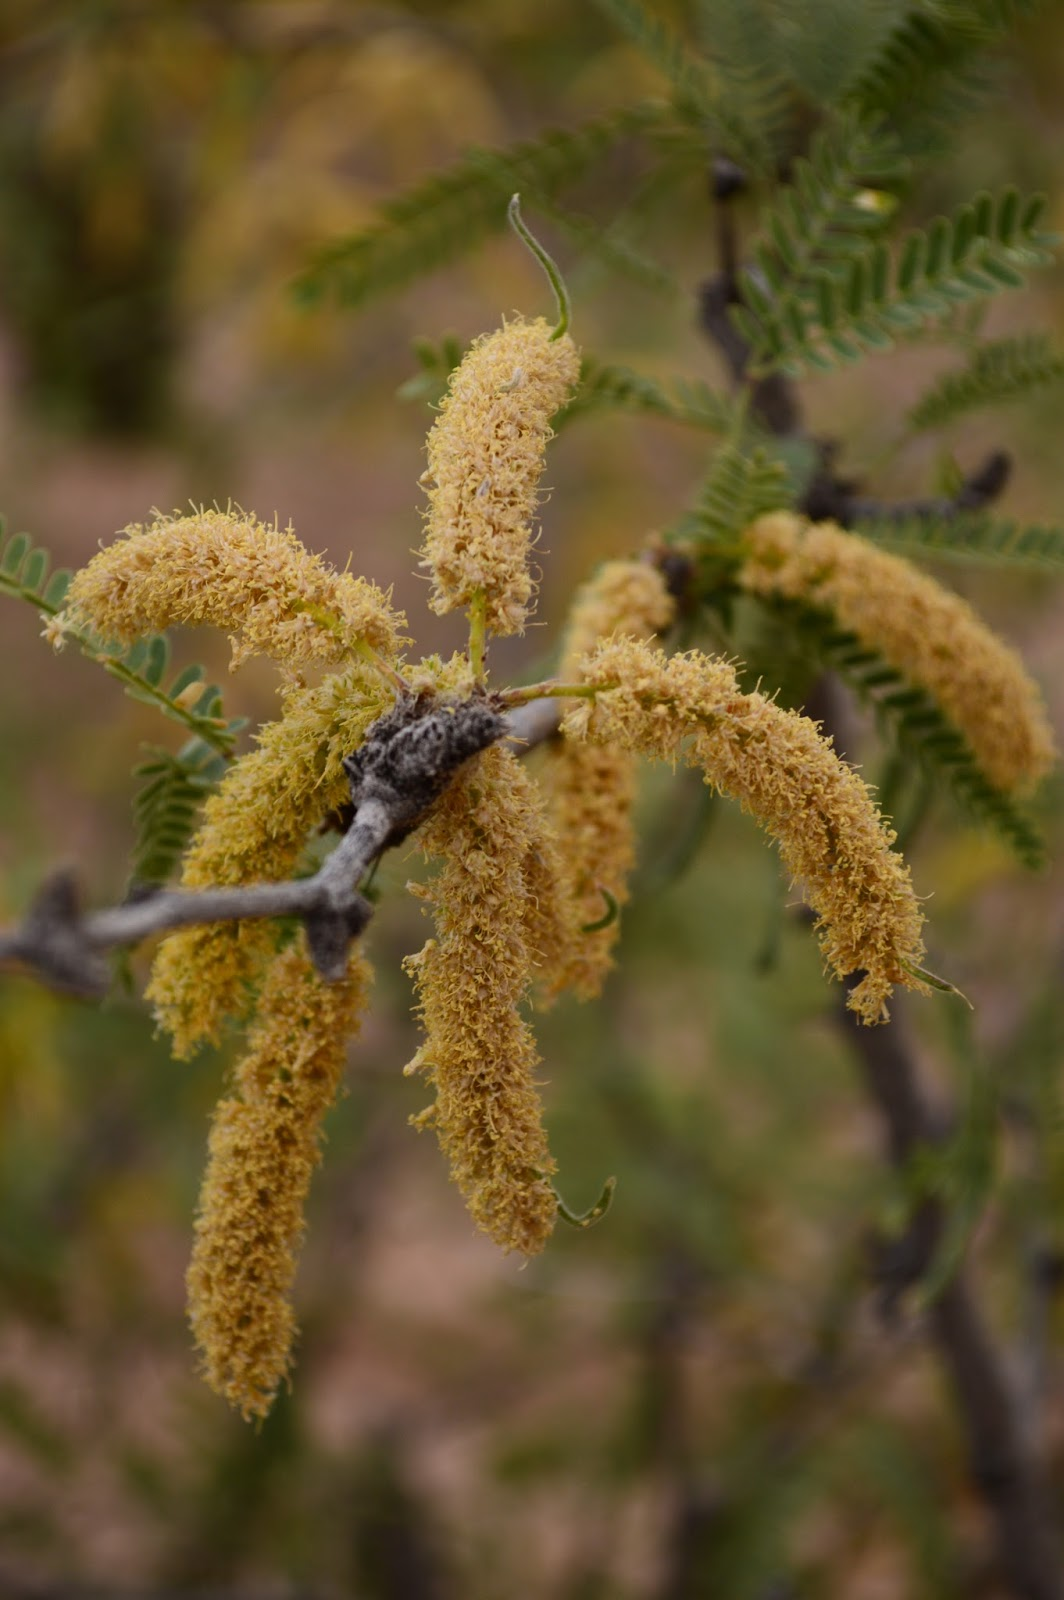 Mesquite, prosopis, desert tree, sonora, native tree